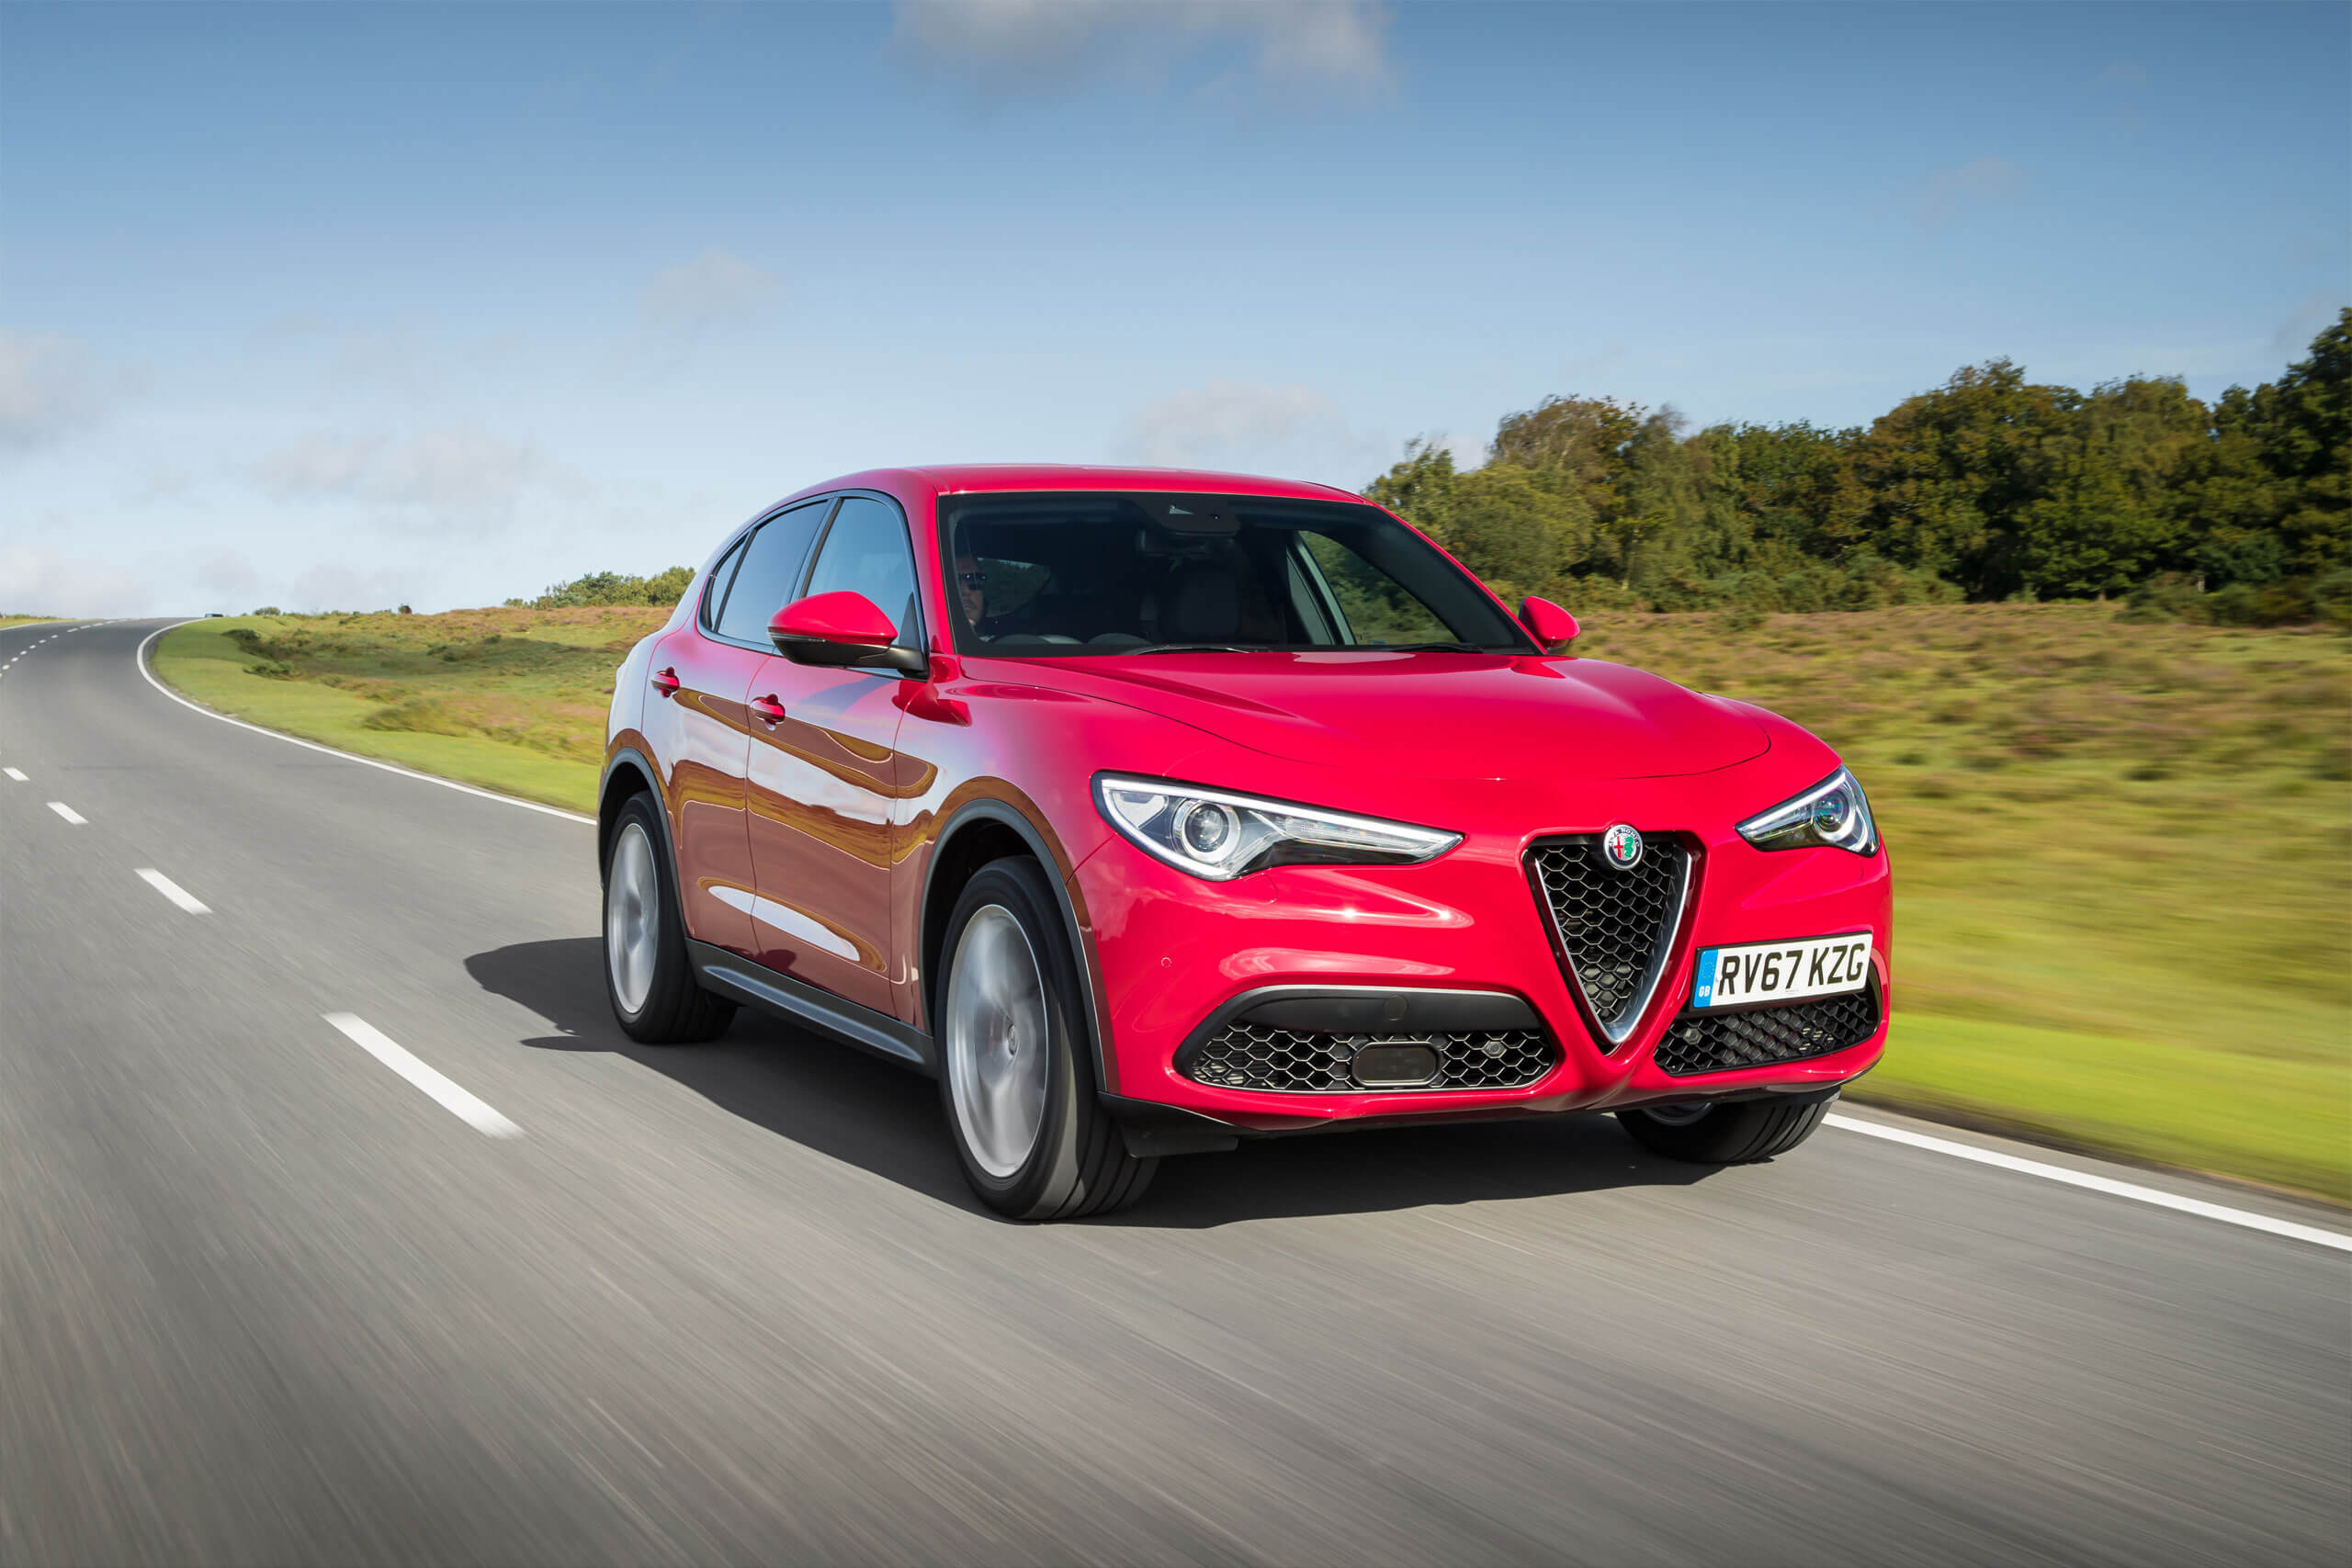 2018 Alfa Romeo Stelvio Revealed